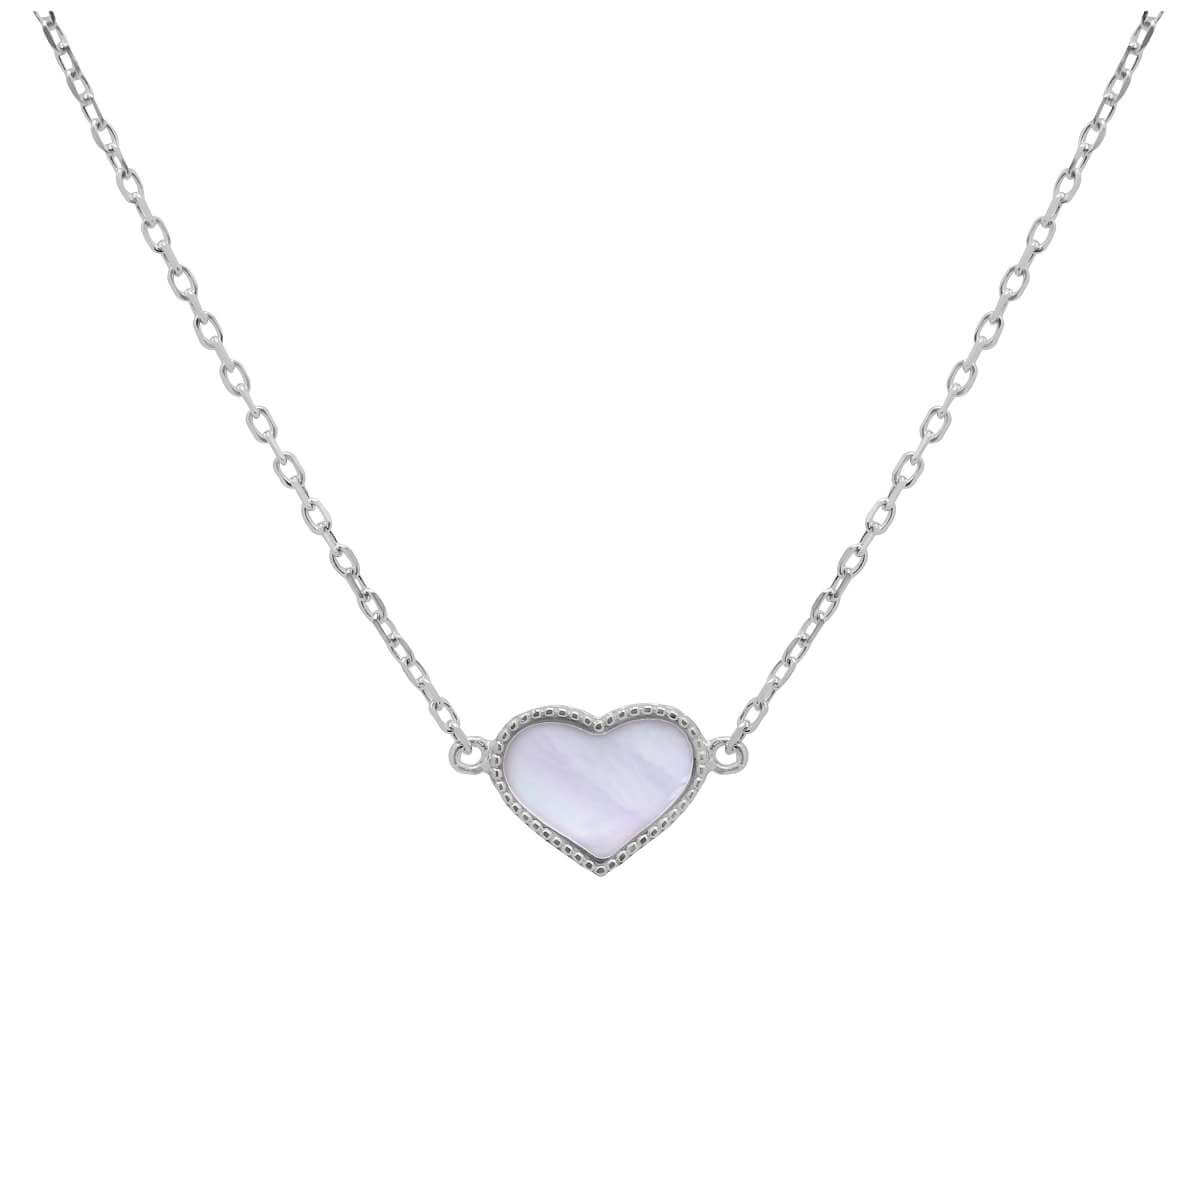 Sterling Silver Mother of Pearl Heart Necklace - 18 Inches